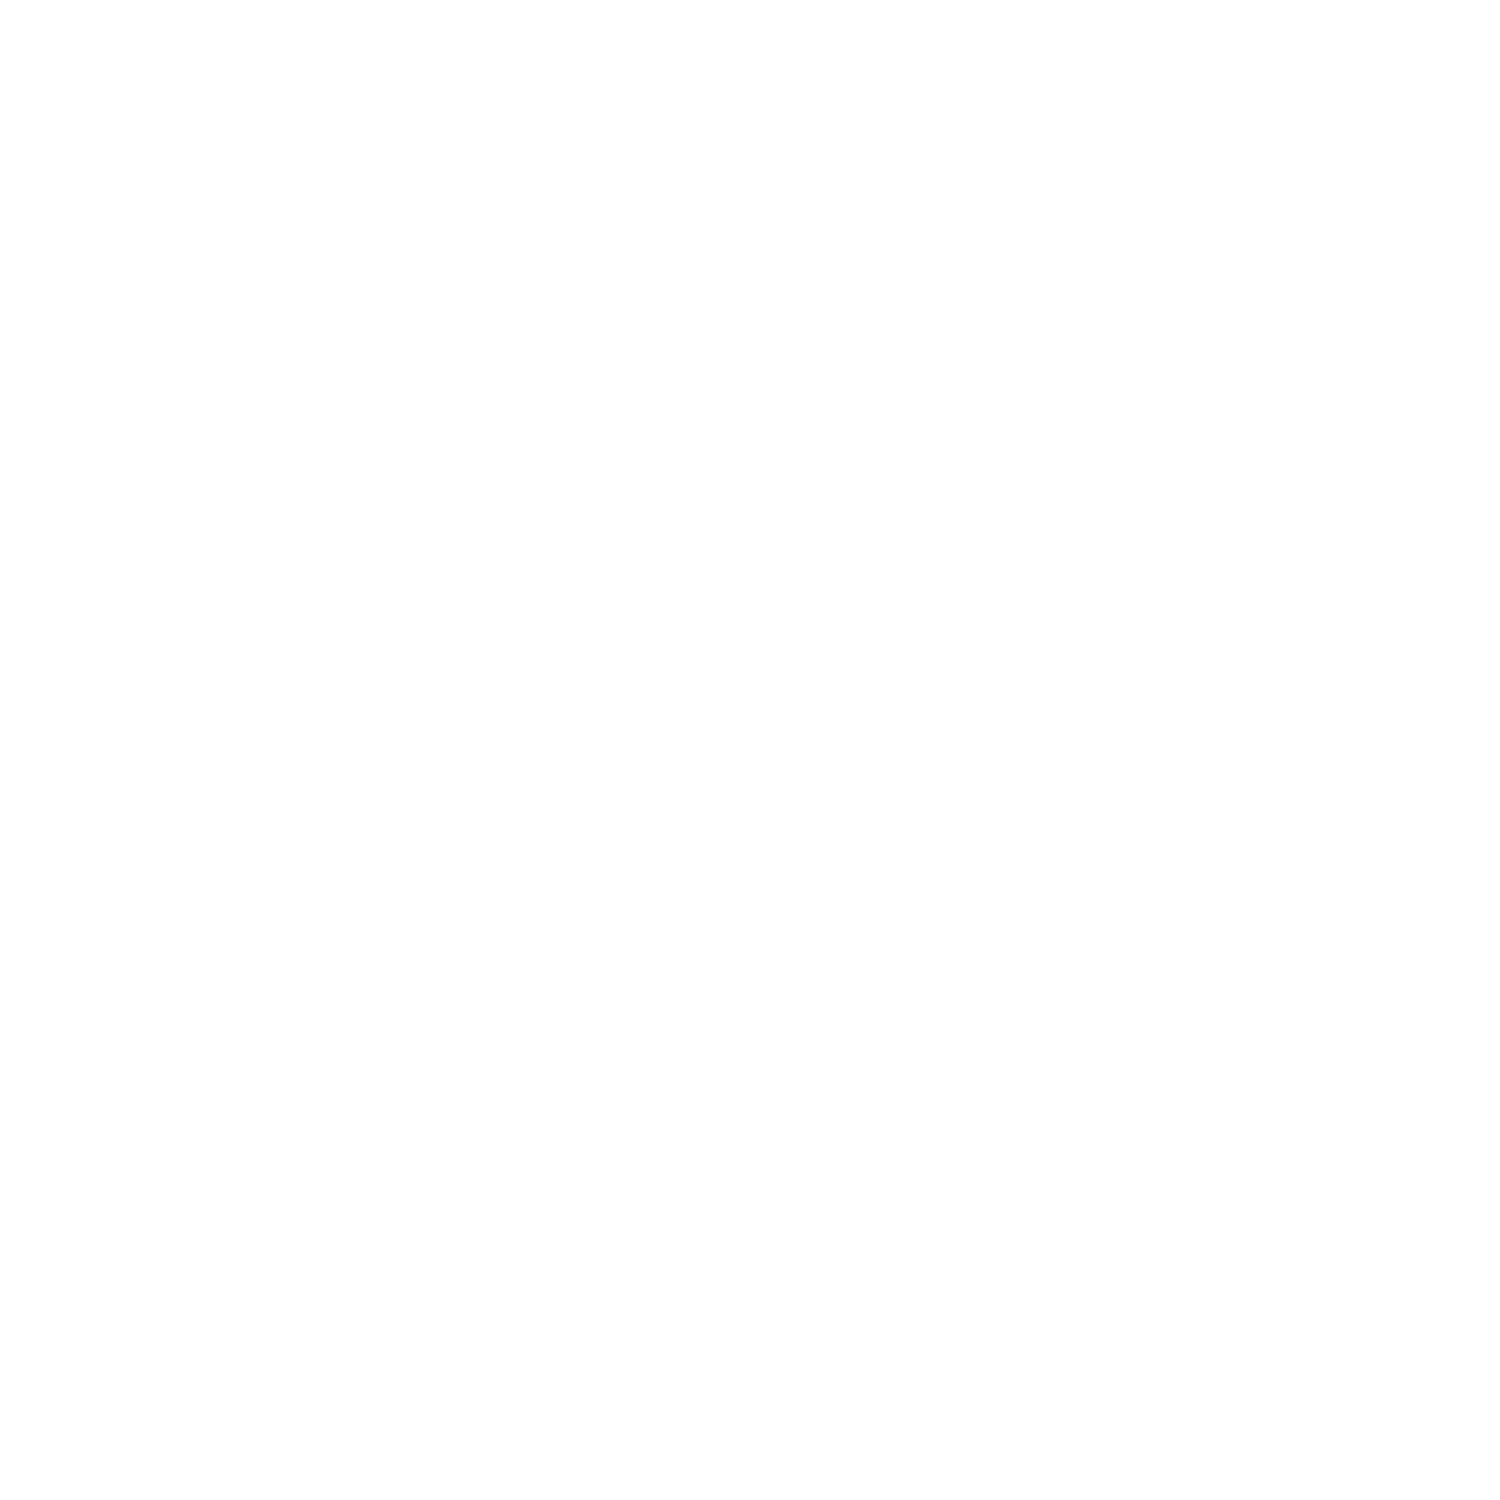 Rocketeers of Retail